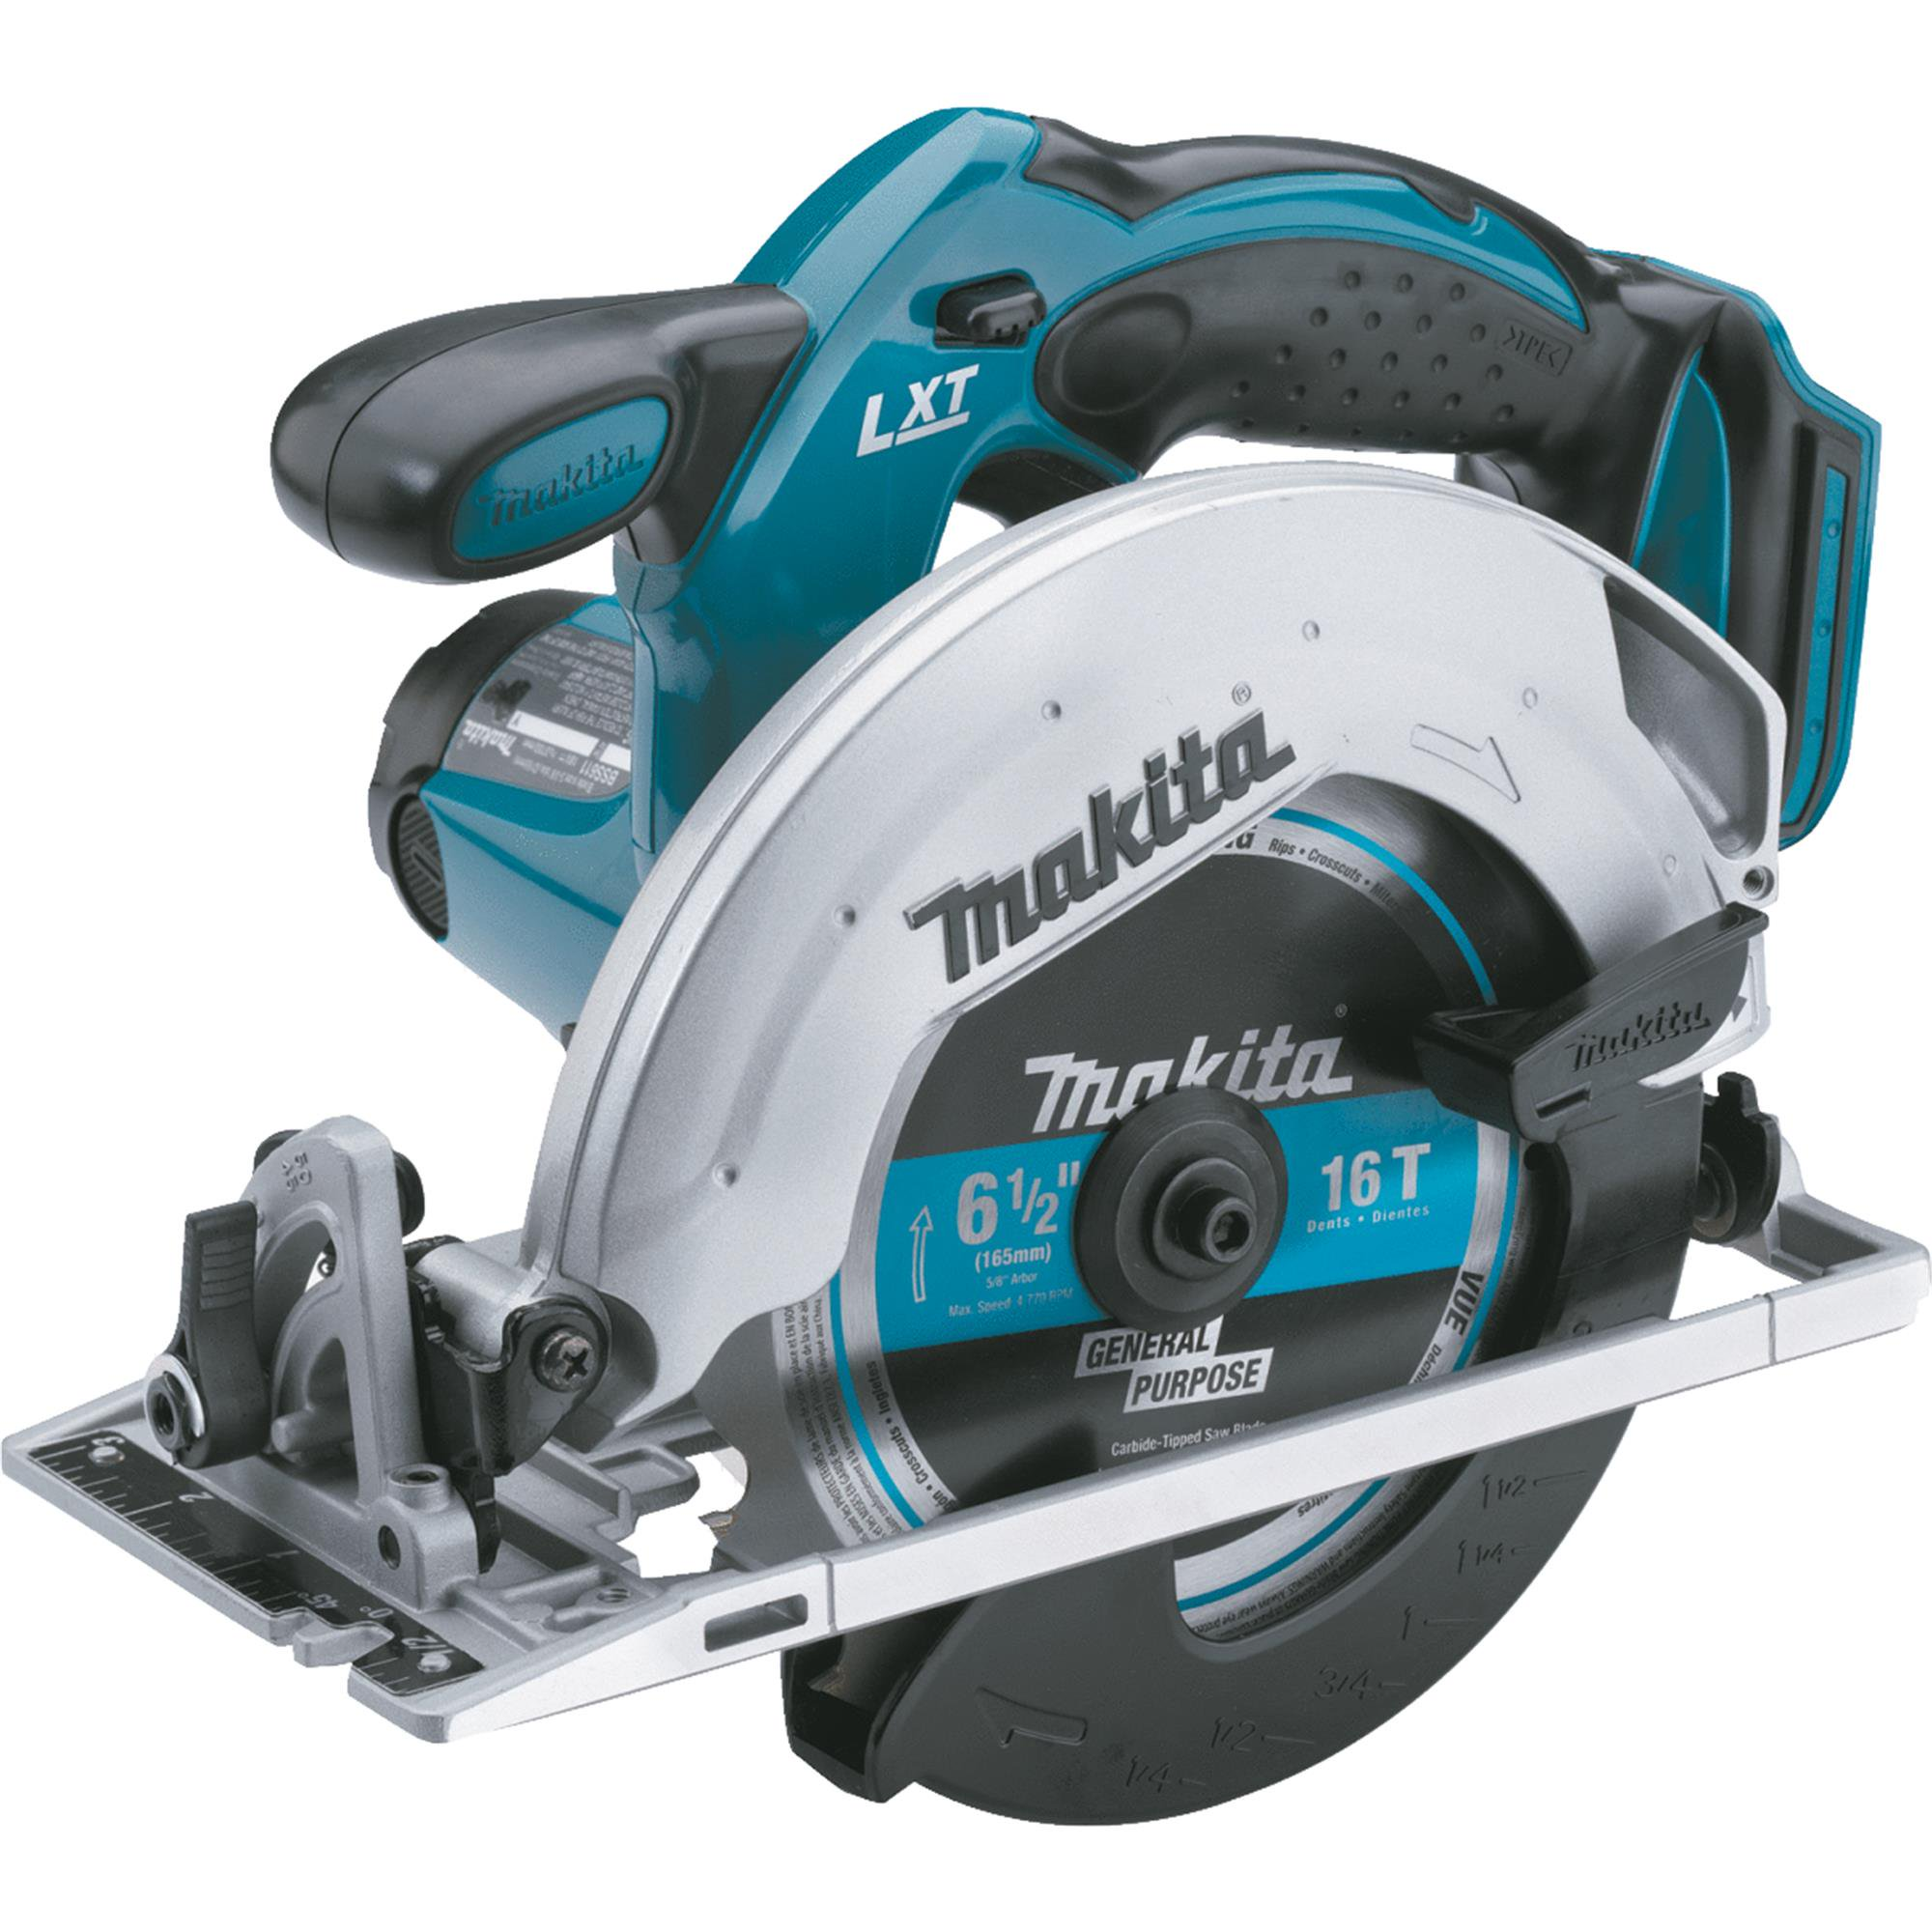 Makita 18V LXT Lithium-Ion Cordless Circular Saw - Bare Tool